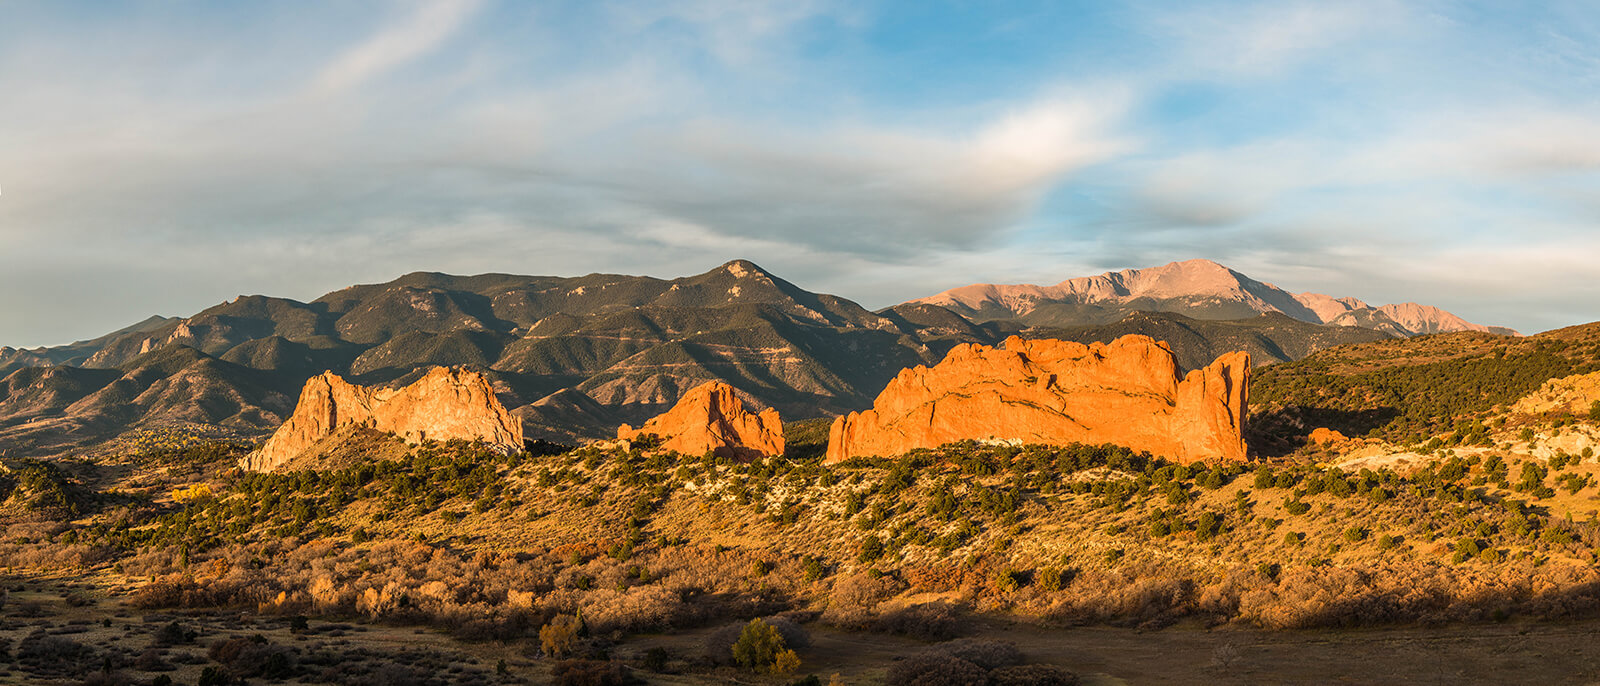 Sunrise at Garden Of The Gods in Colorado Springs, Colorado, USA